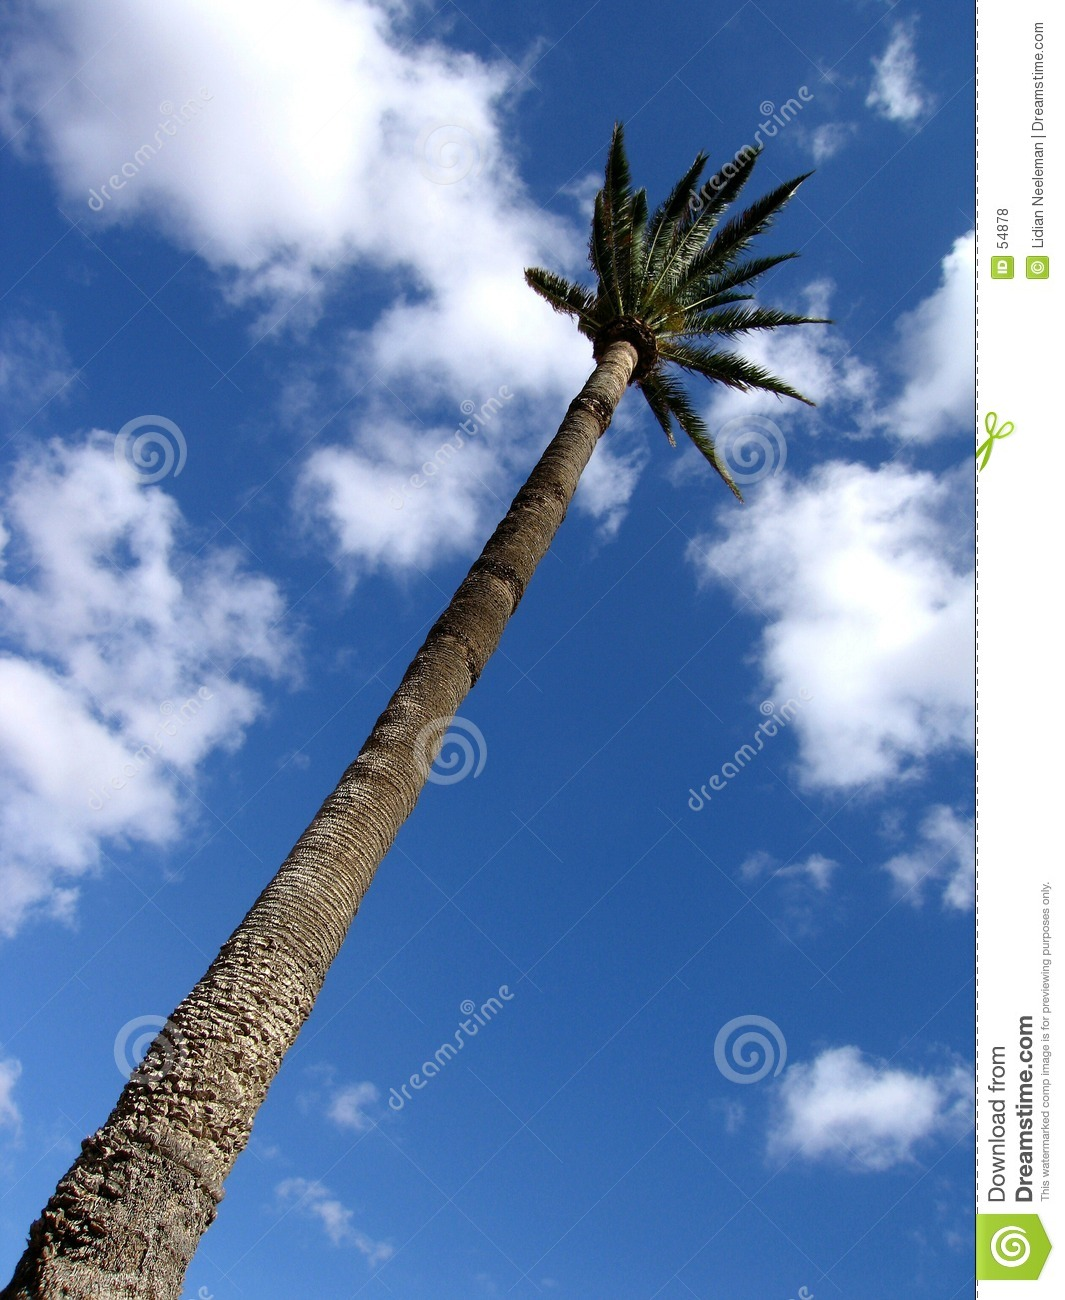 Download Palma fotografia stock. Immagine di tropicale, isolato, nave - 54878